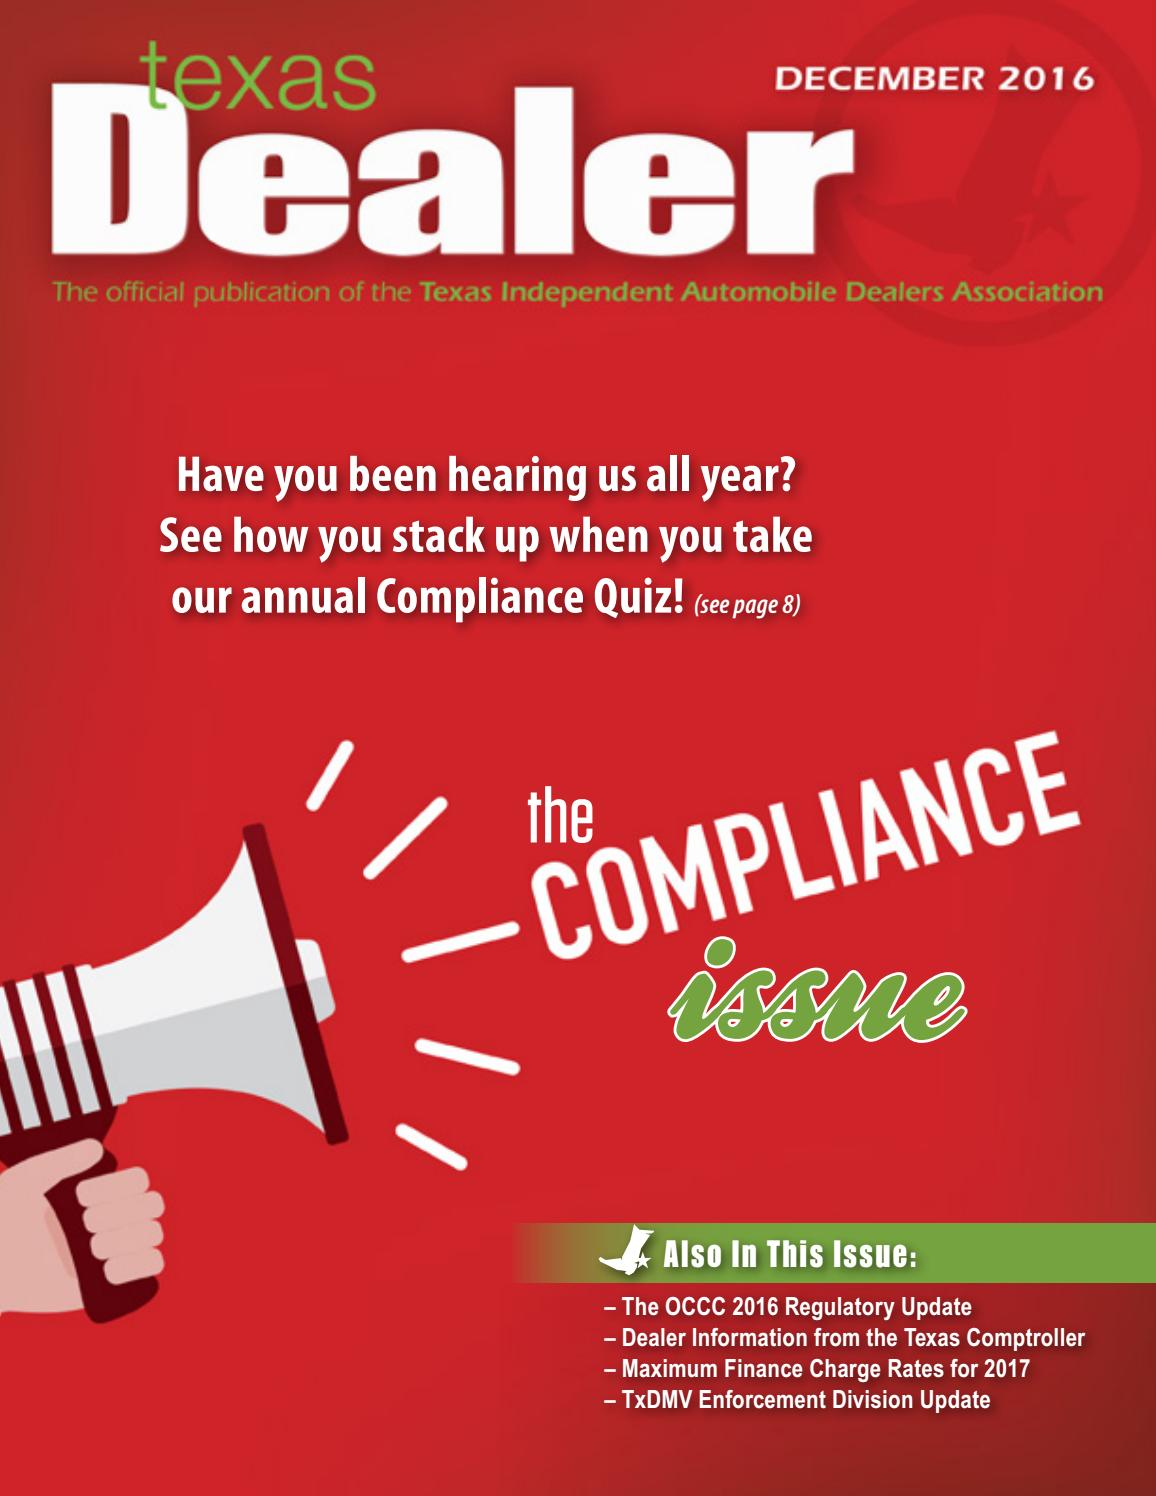 texas dealer december 2016 by texas independent auto dealers texas dealer december 2016 by texas independent auto dealers association issuu